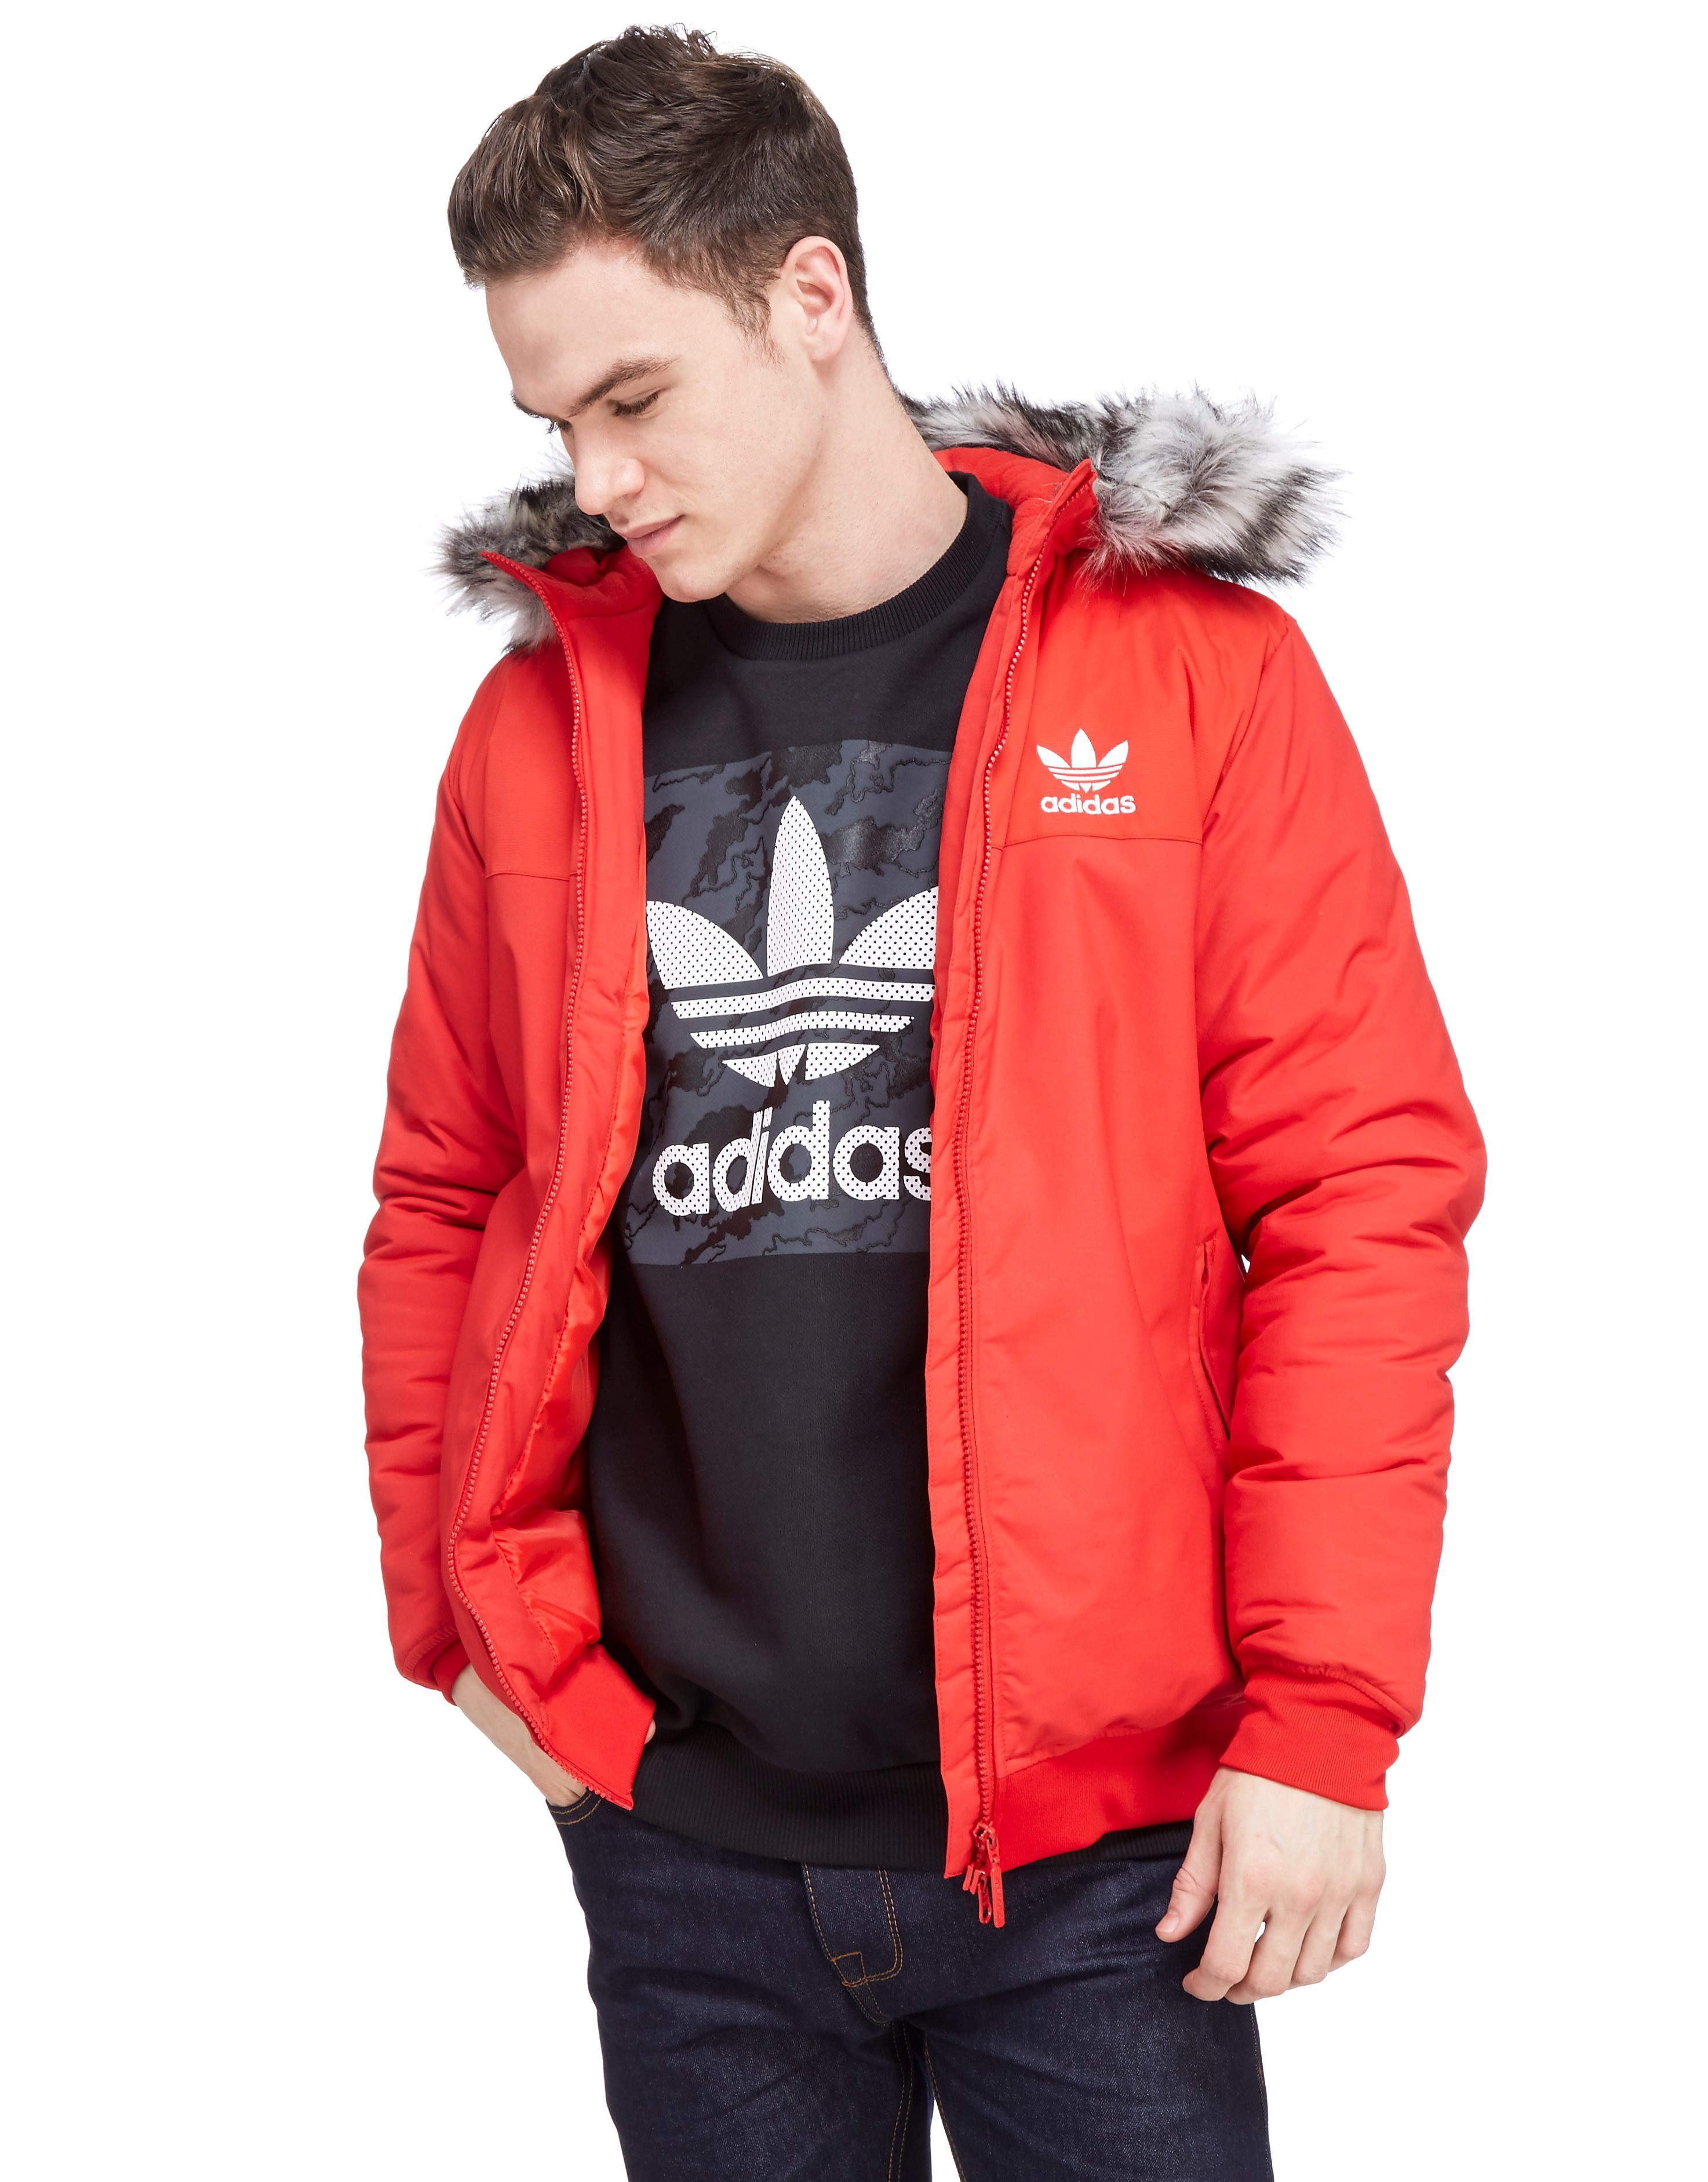 adidas Originals Trefoil Fur Jacket